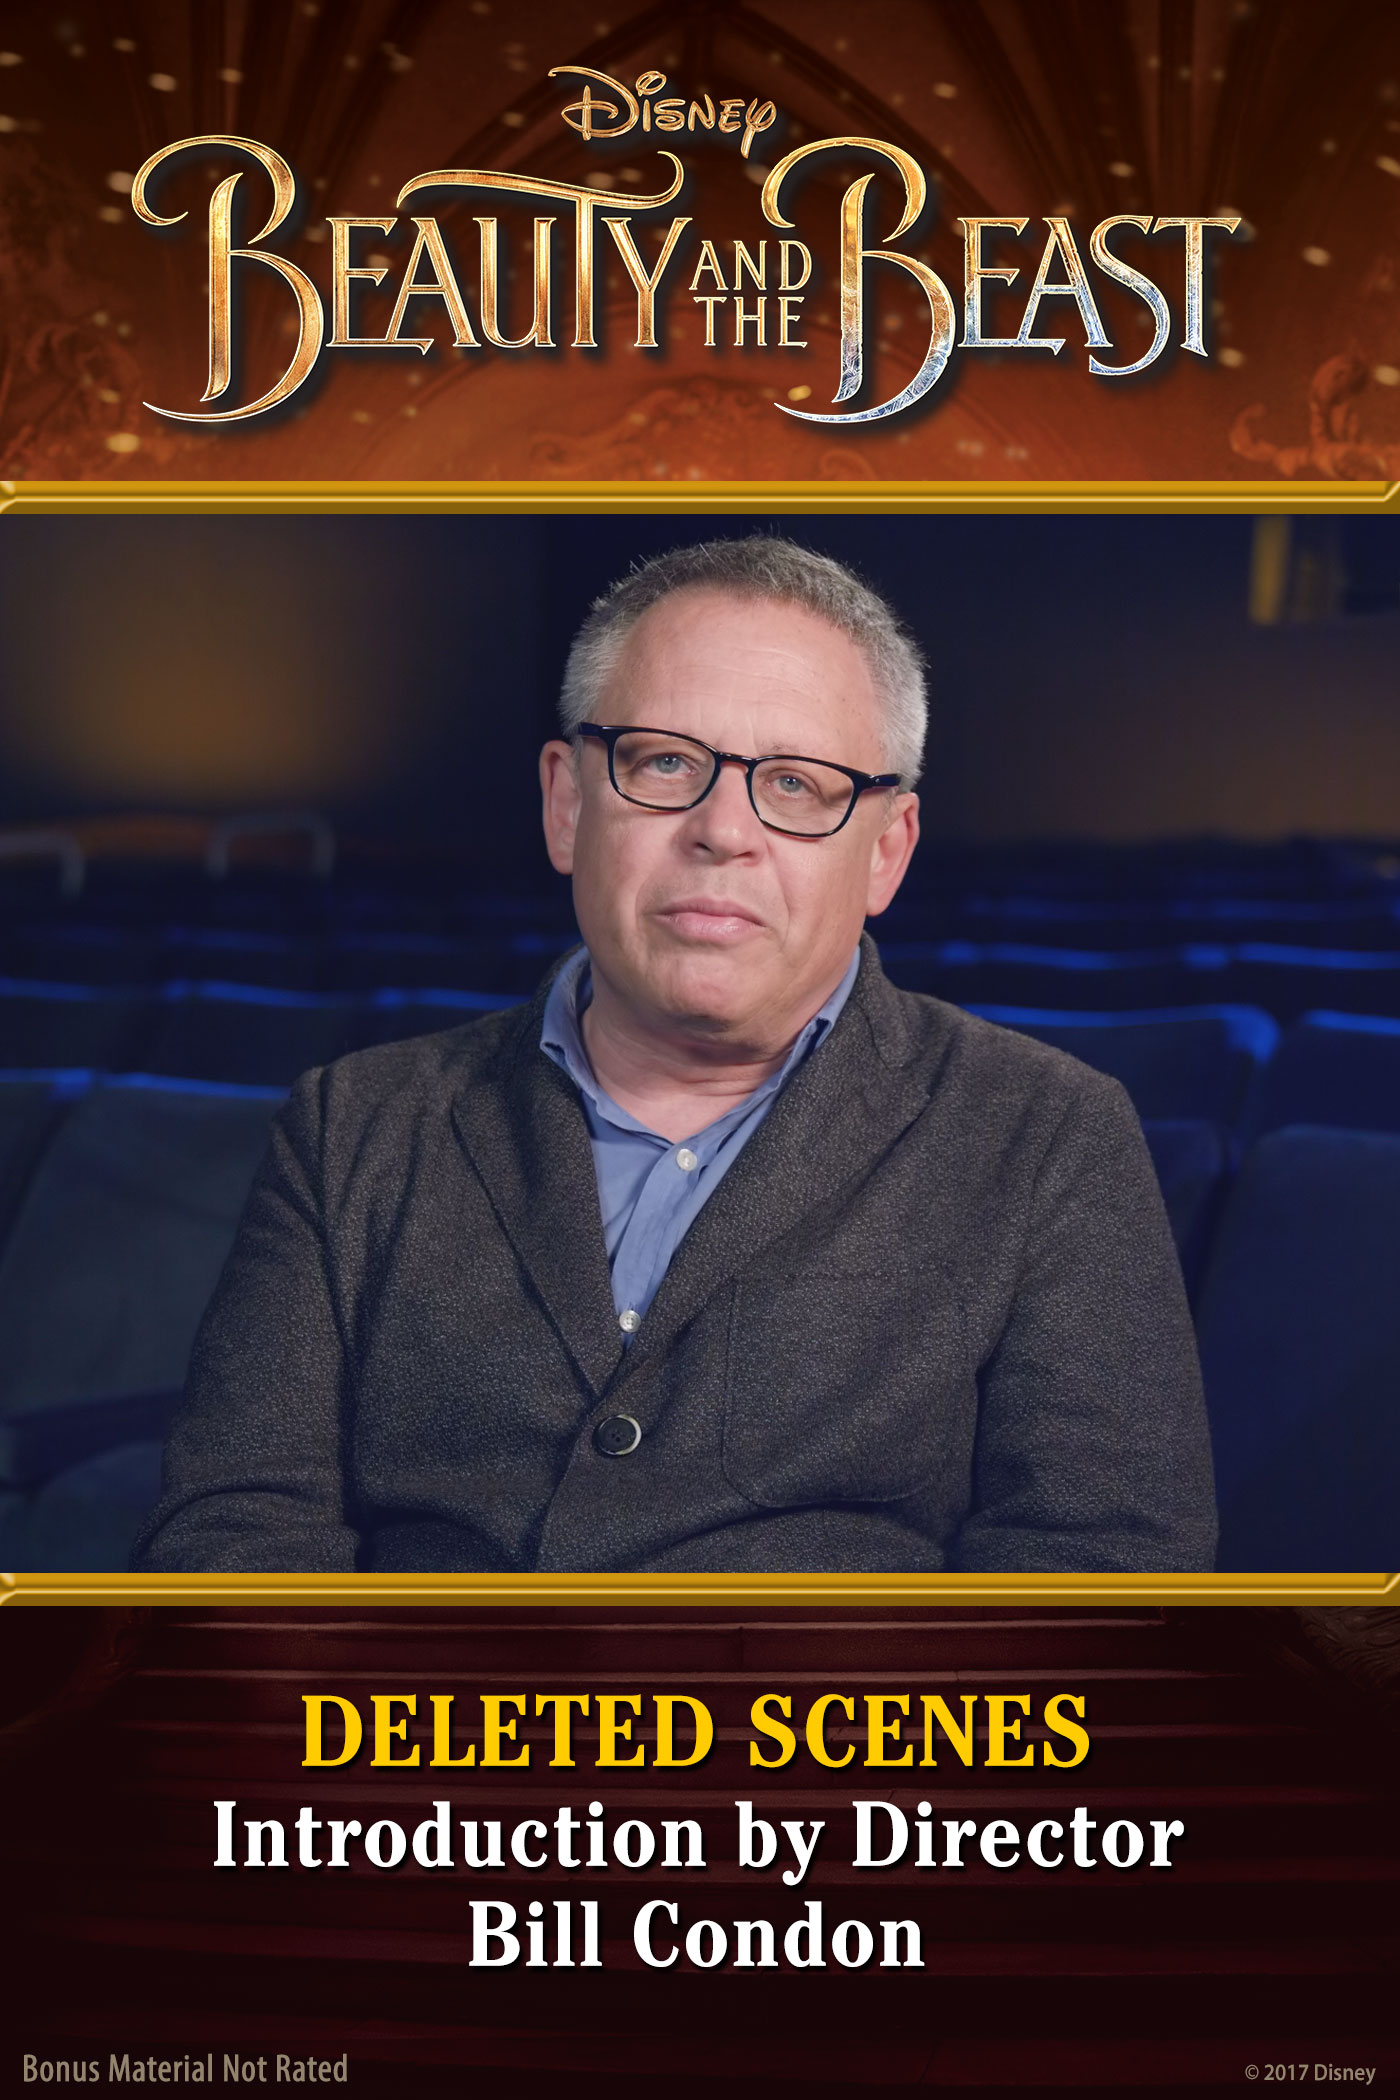 Deleted Scenes: Introduction by Director Bill Condon